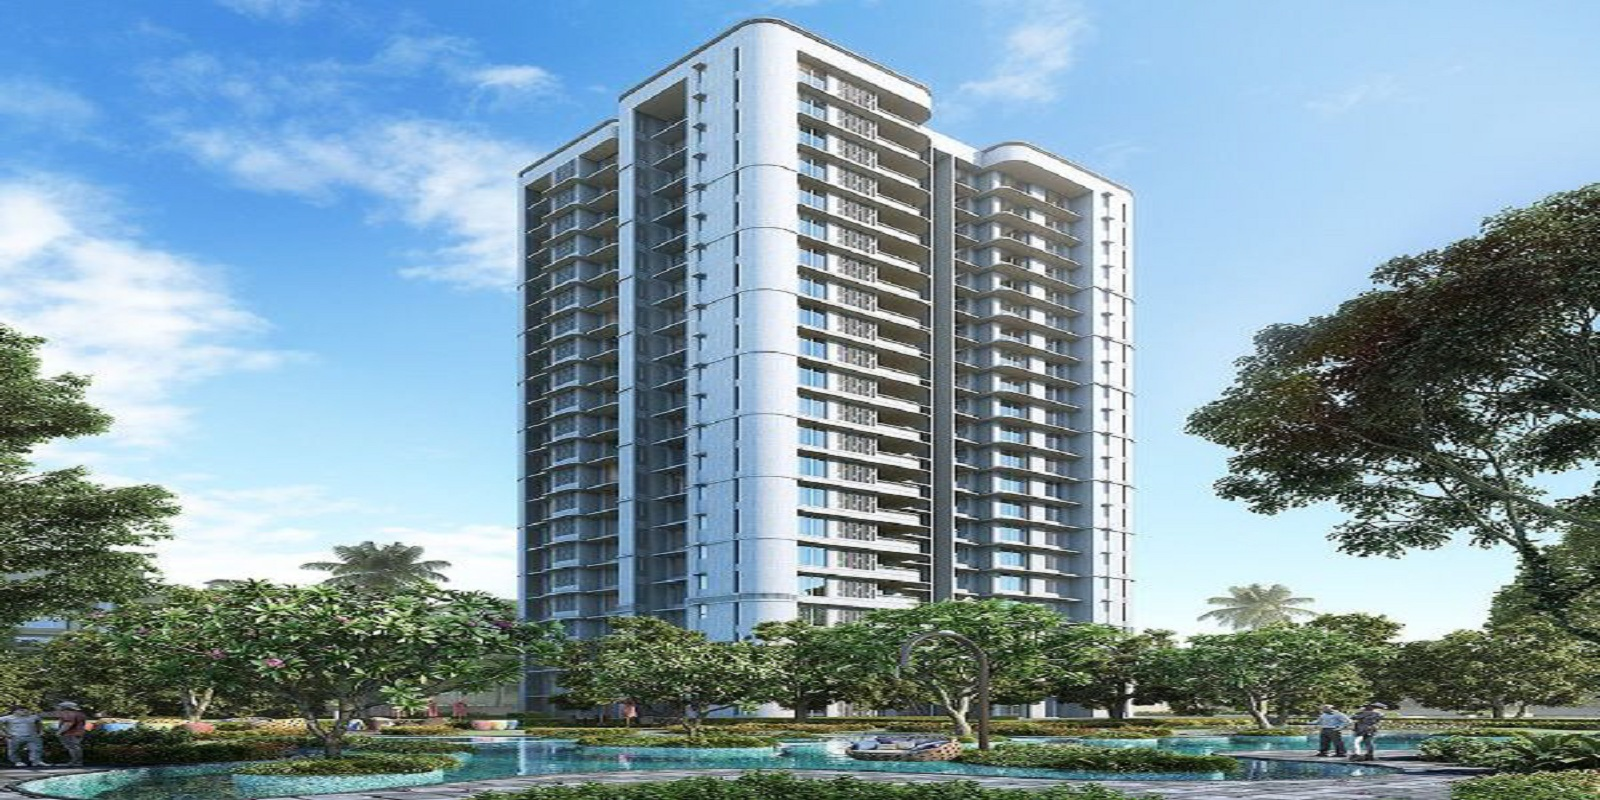 lodha patel estate tower a and b project large image2